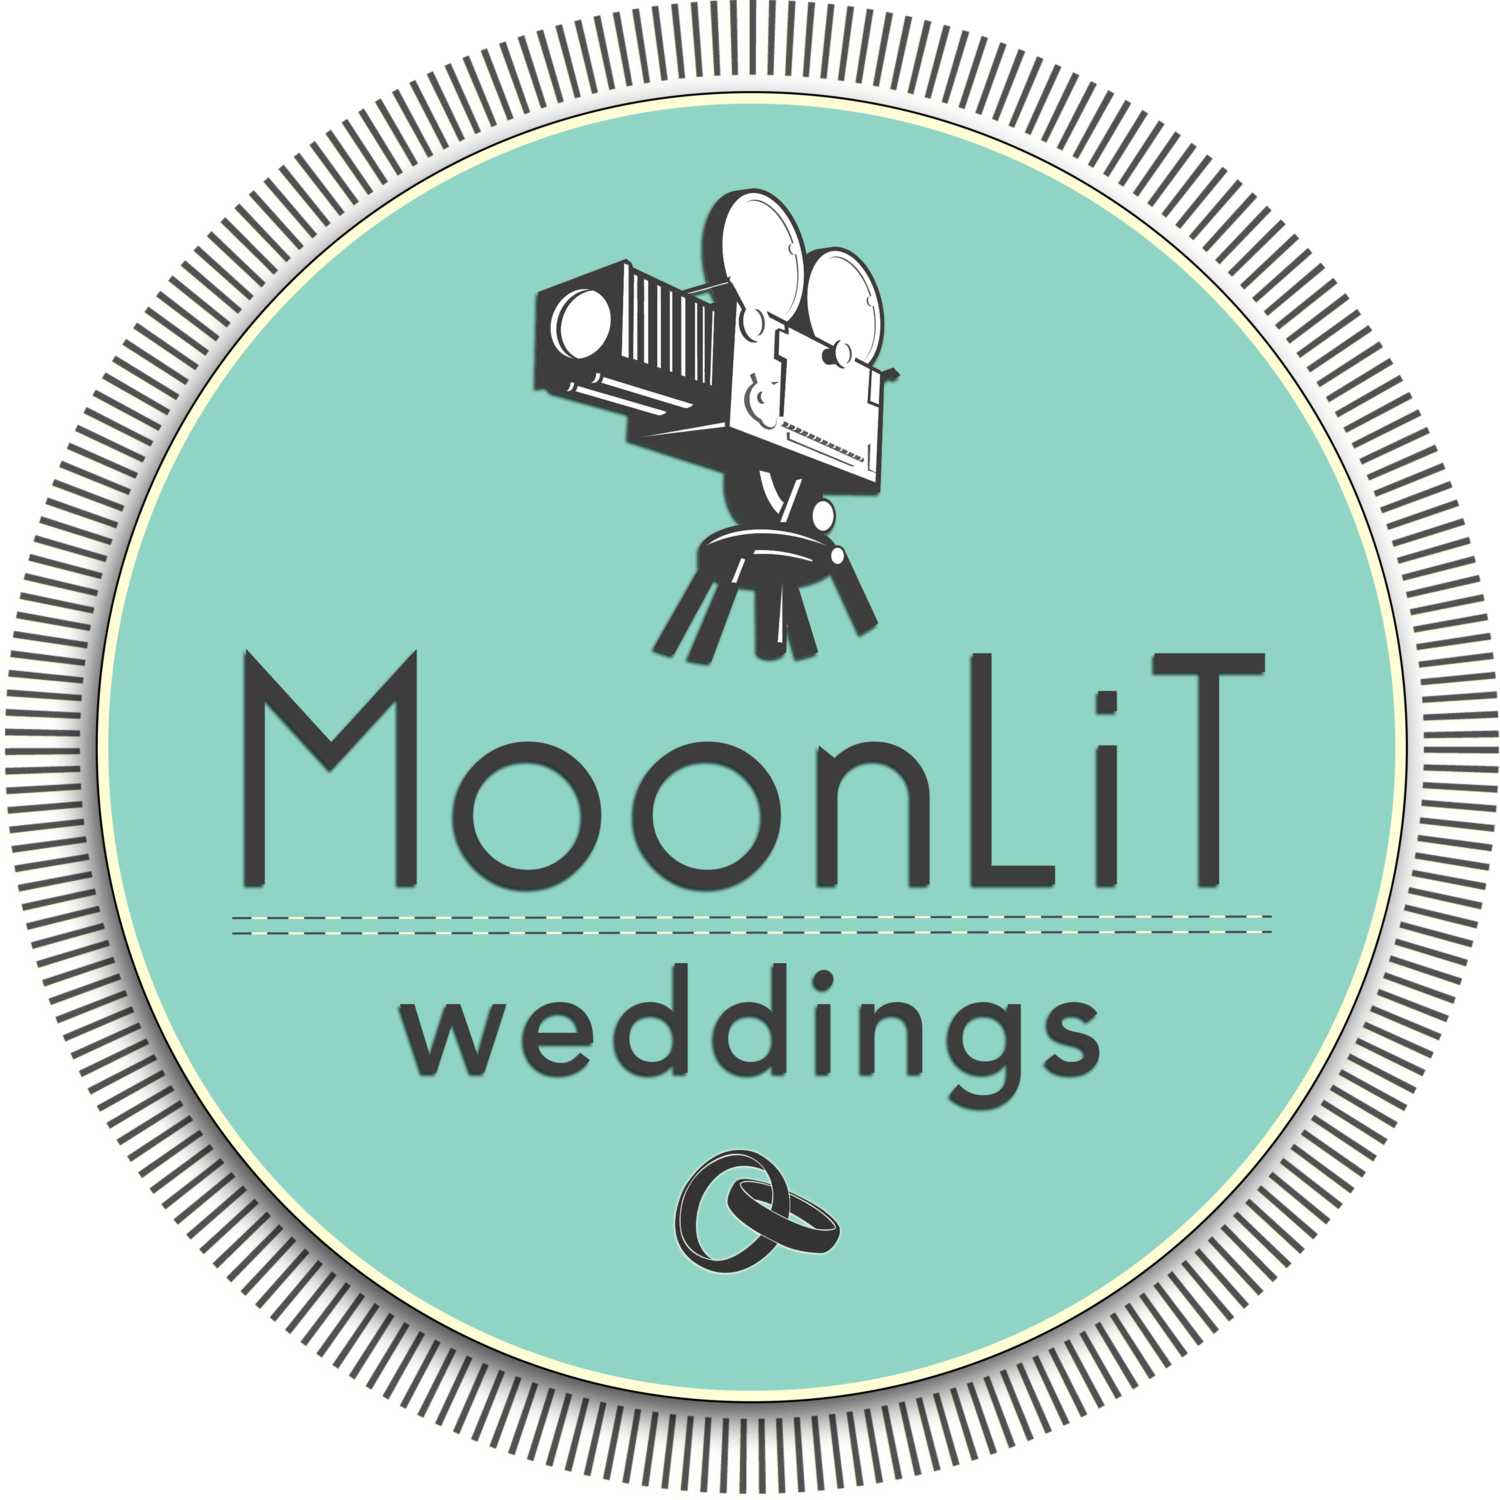 MoonLiT weddings